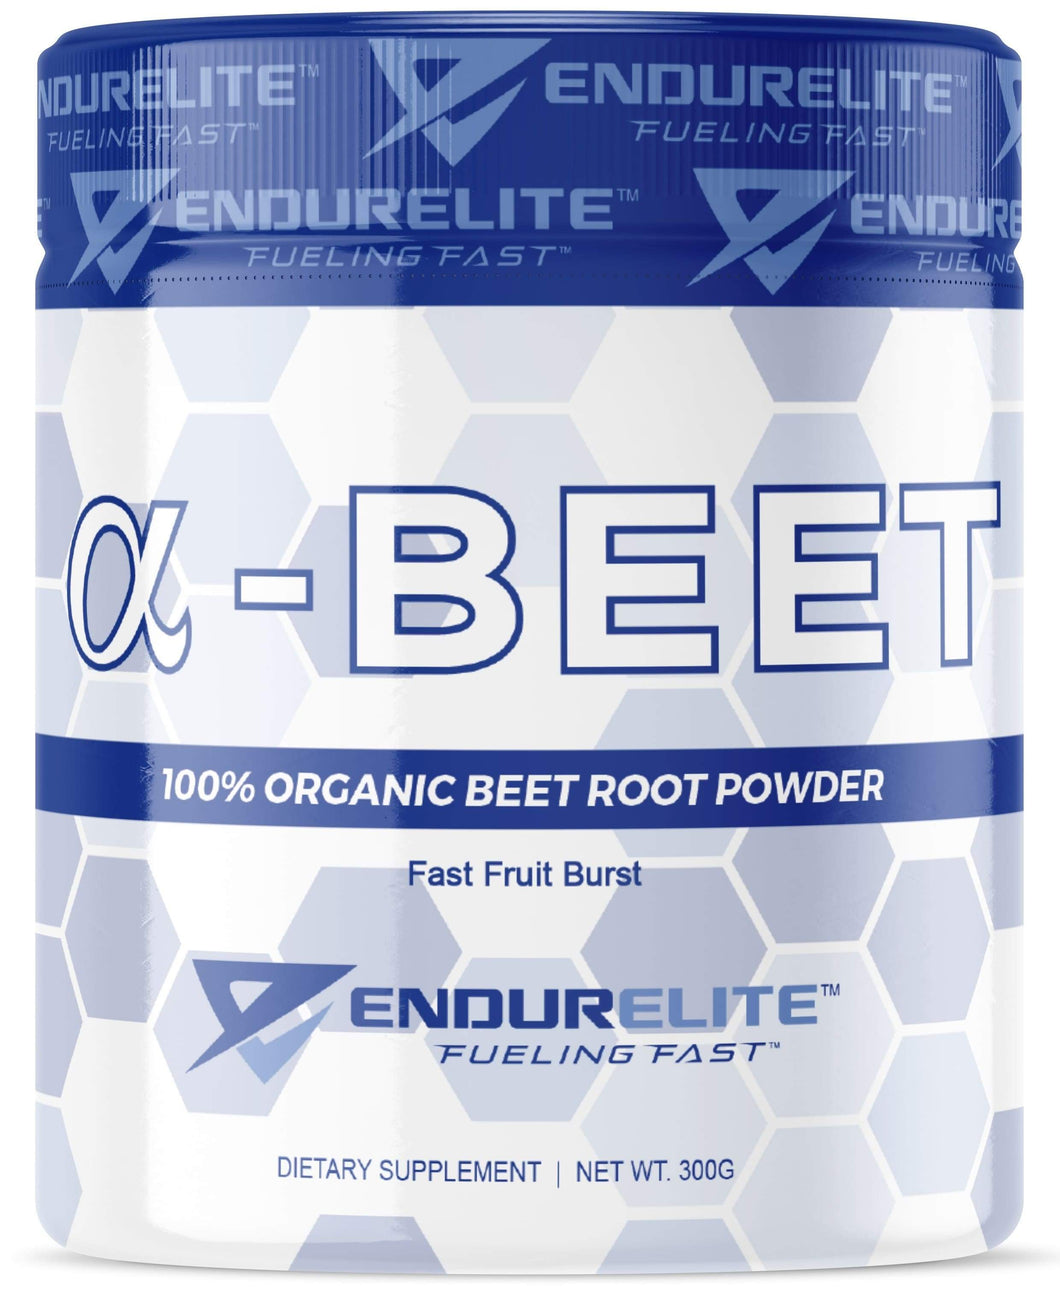 EndurElite AlphaBeet - 100% Organic Beet Root Powder